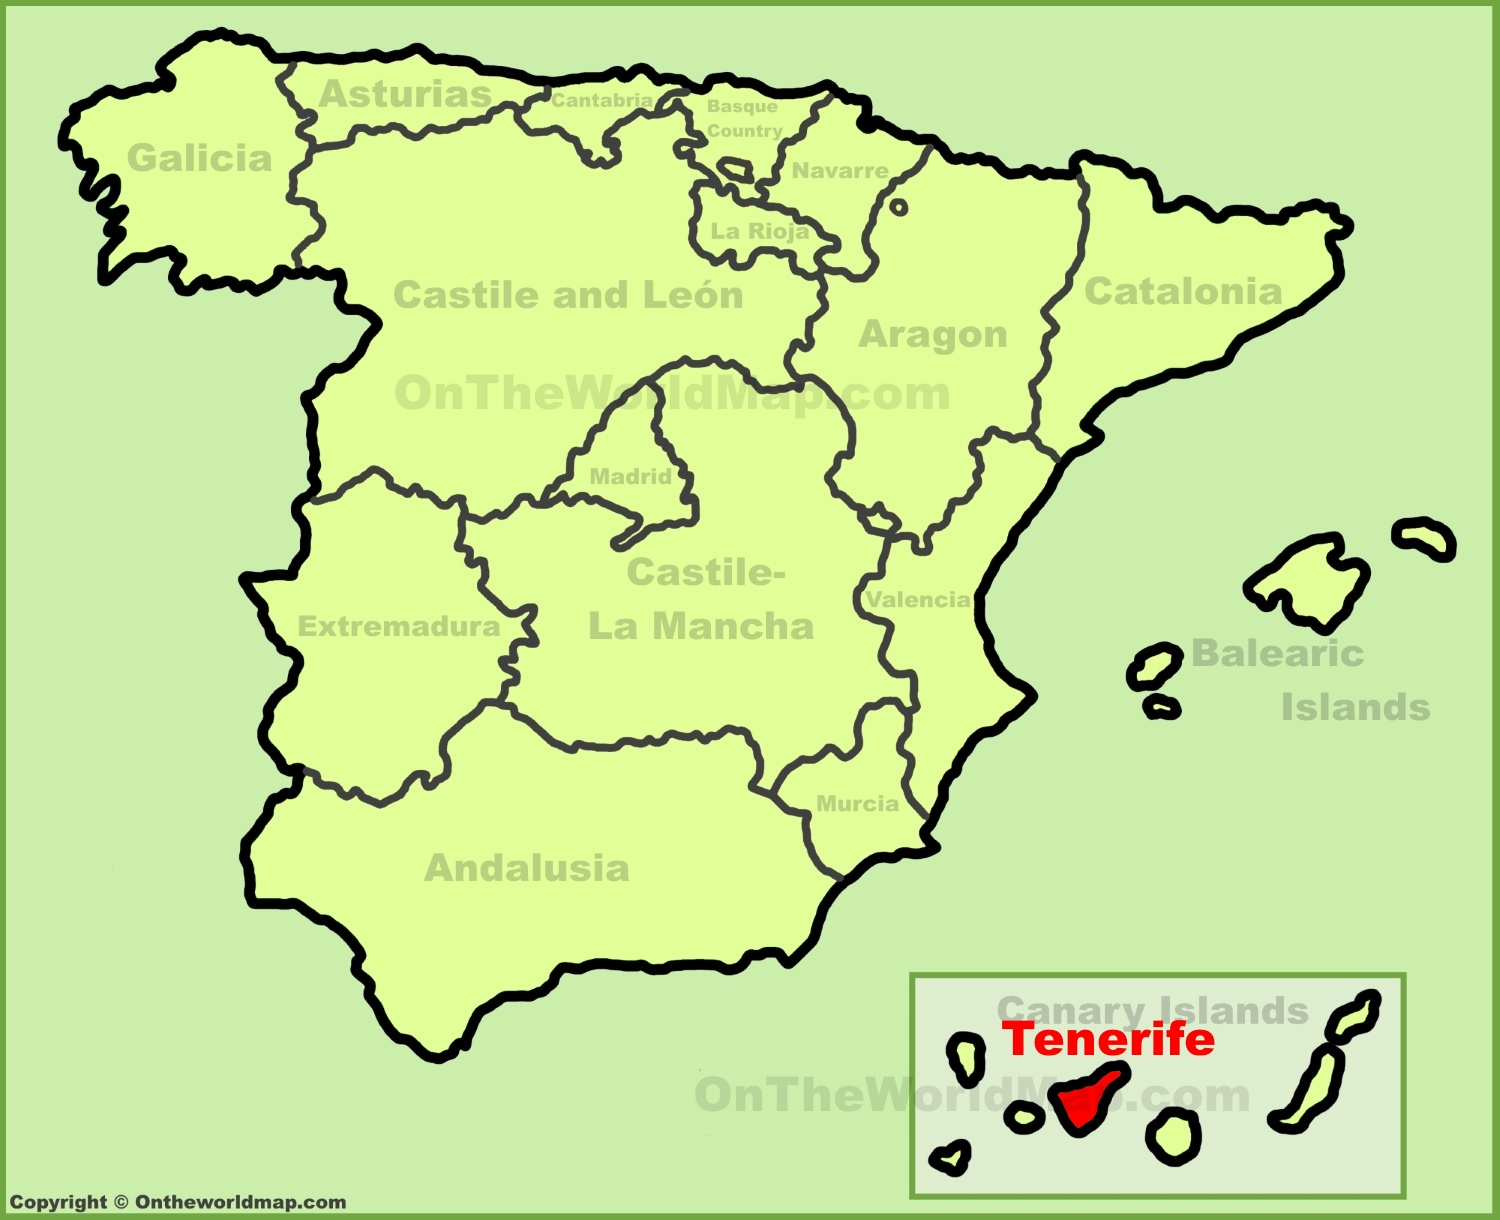 Map Of Spain Tenerife.Tenerife Location On The Spain Map